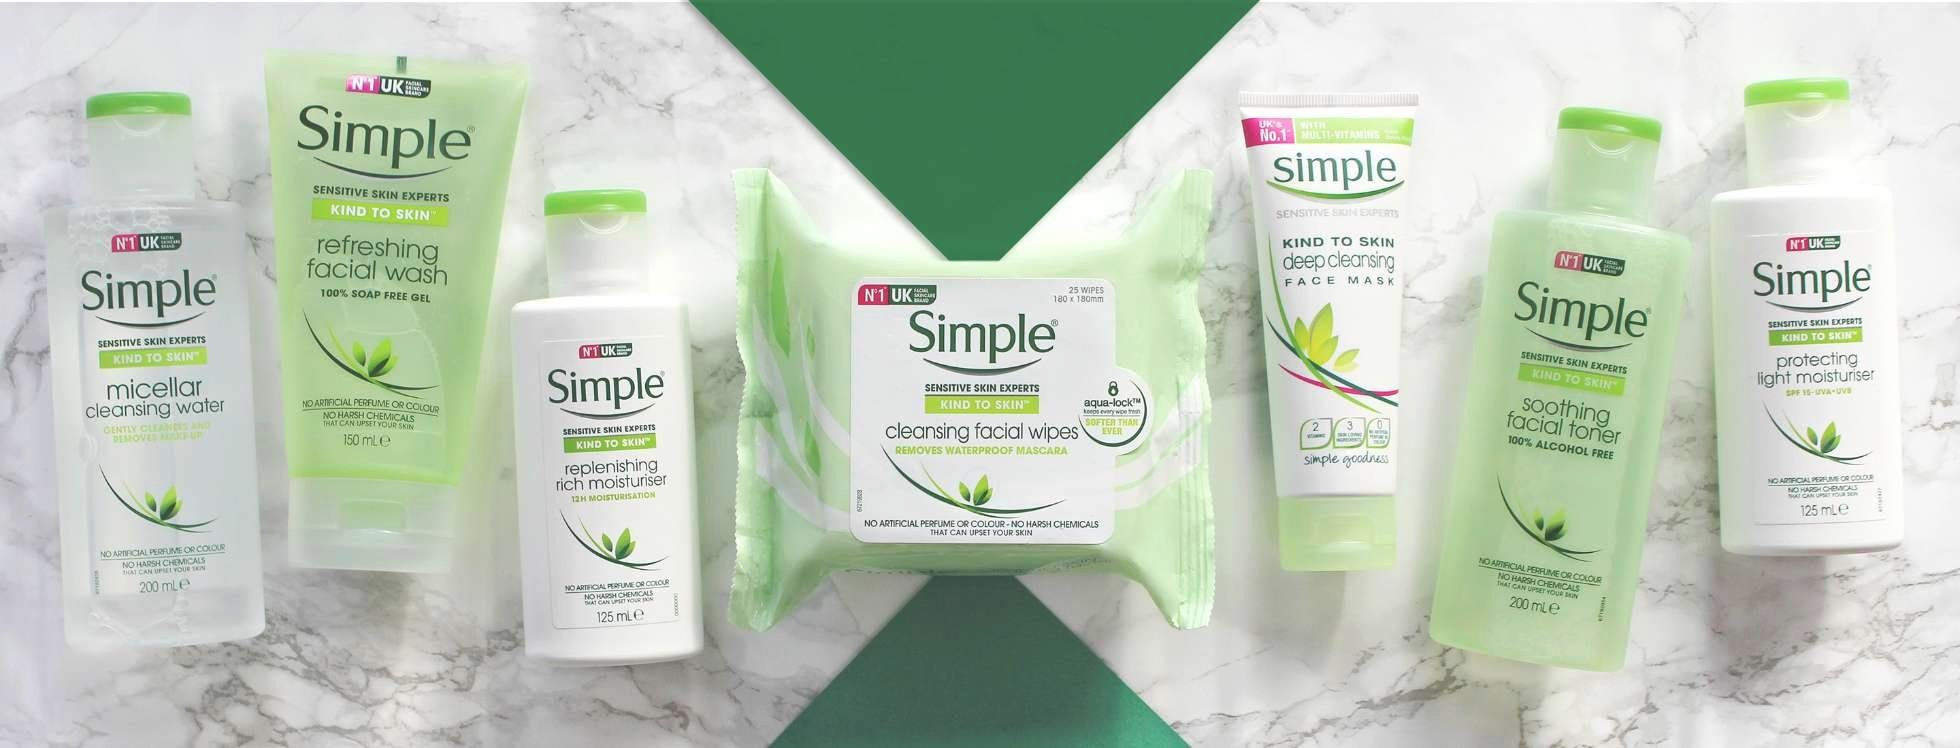 Your Daily Skincare Routine Simple Skincare Simple Skin Care Skin Care Routine Skin Care Products Ski In 2020 Daily Skin Care Skin Care Steps Face Skin Care